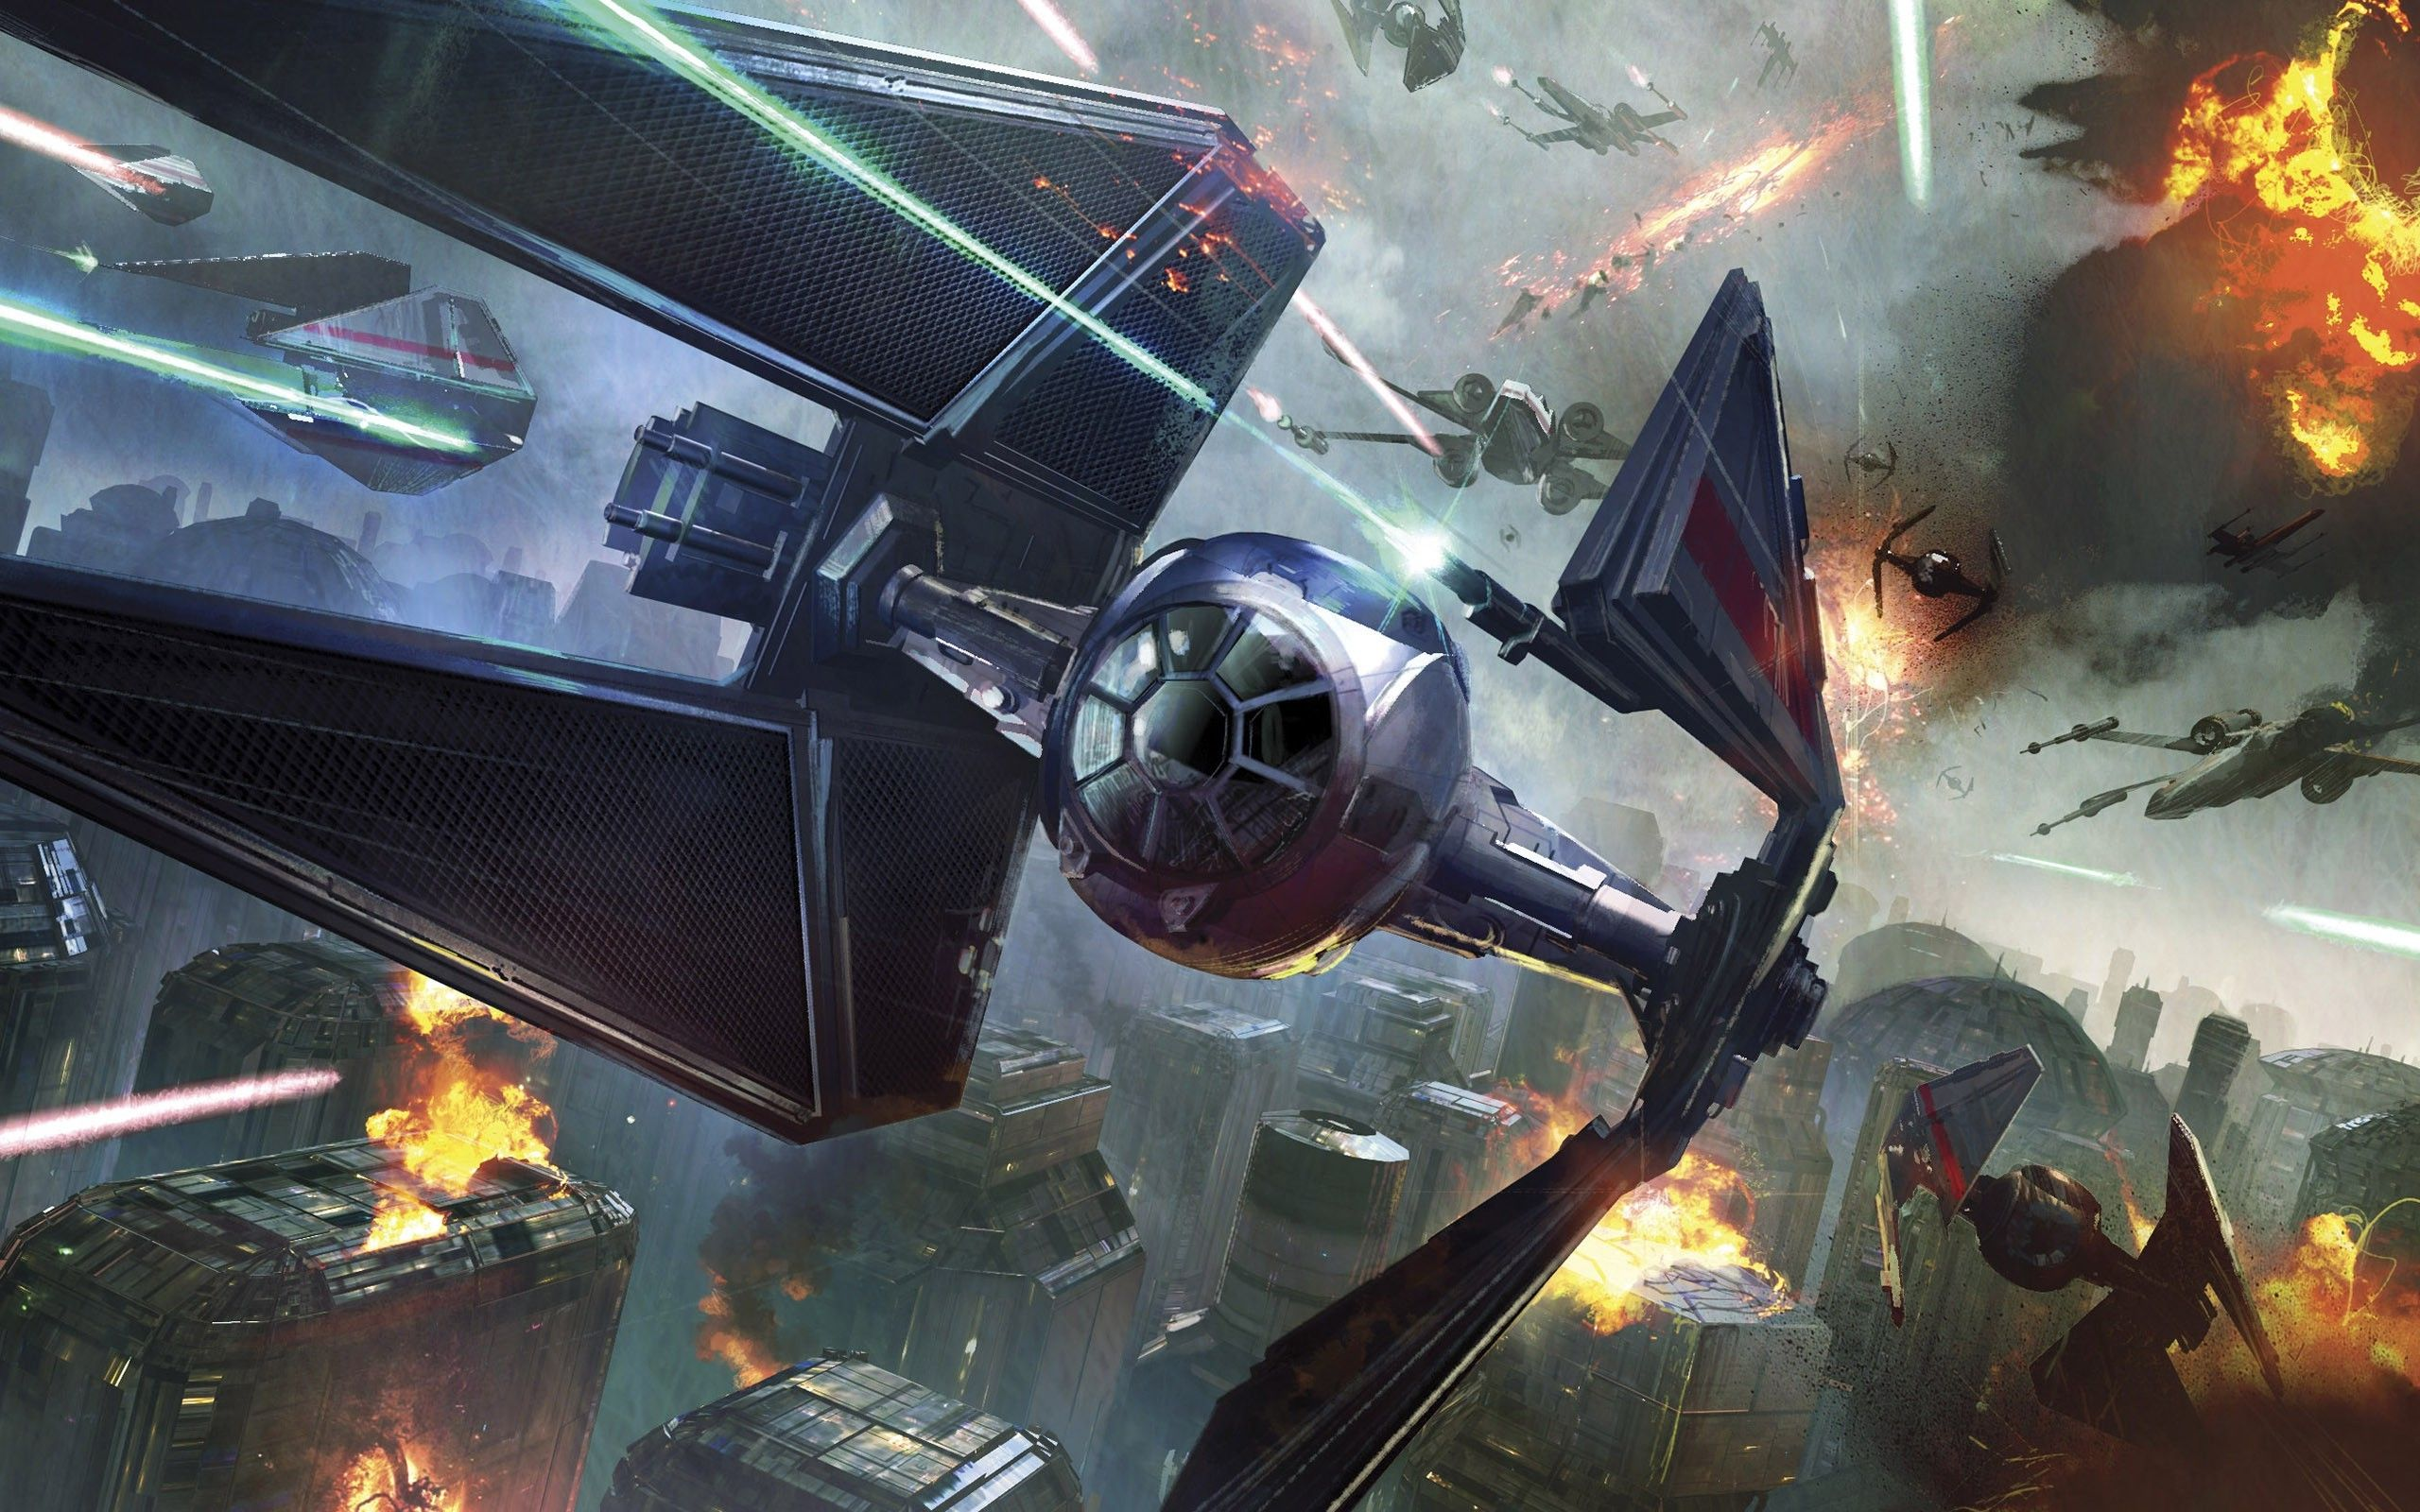 Star Wars Space Battle Wallpapers Top Free Star Wars Space